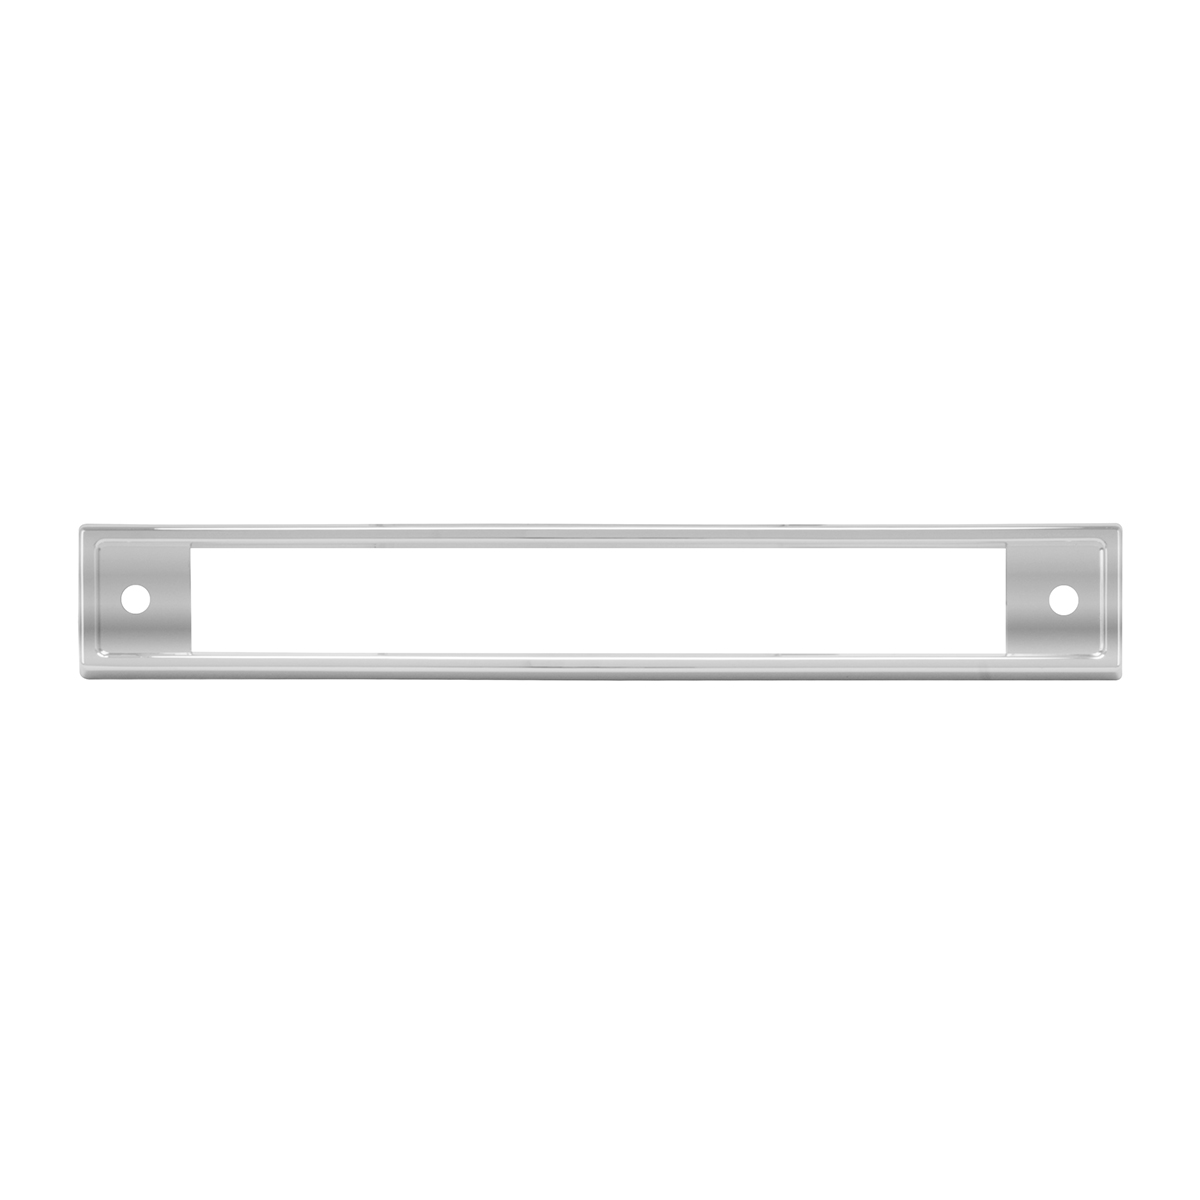 68237 Instrument Panel Cover for Kenworth W